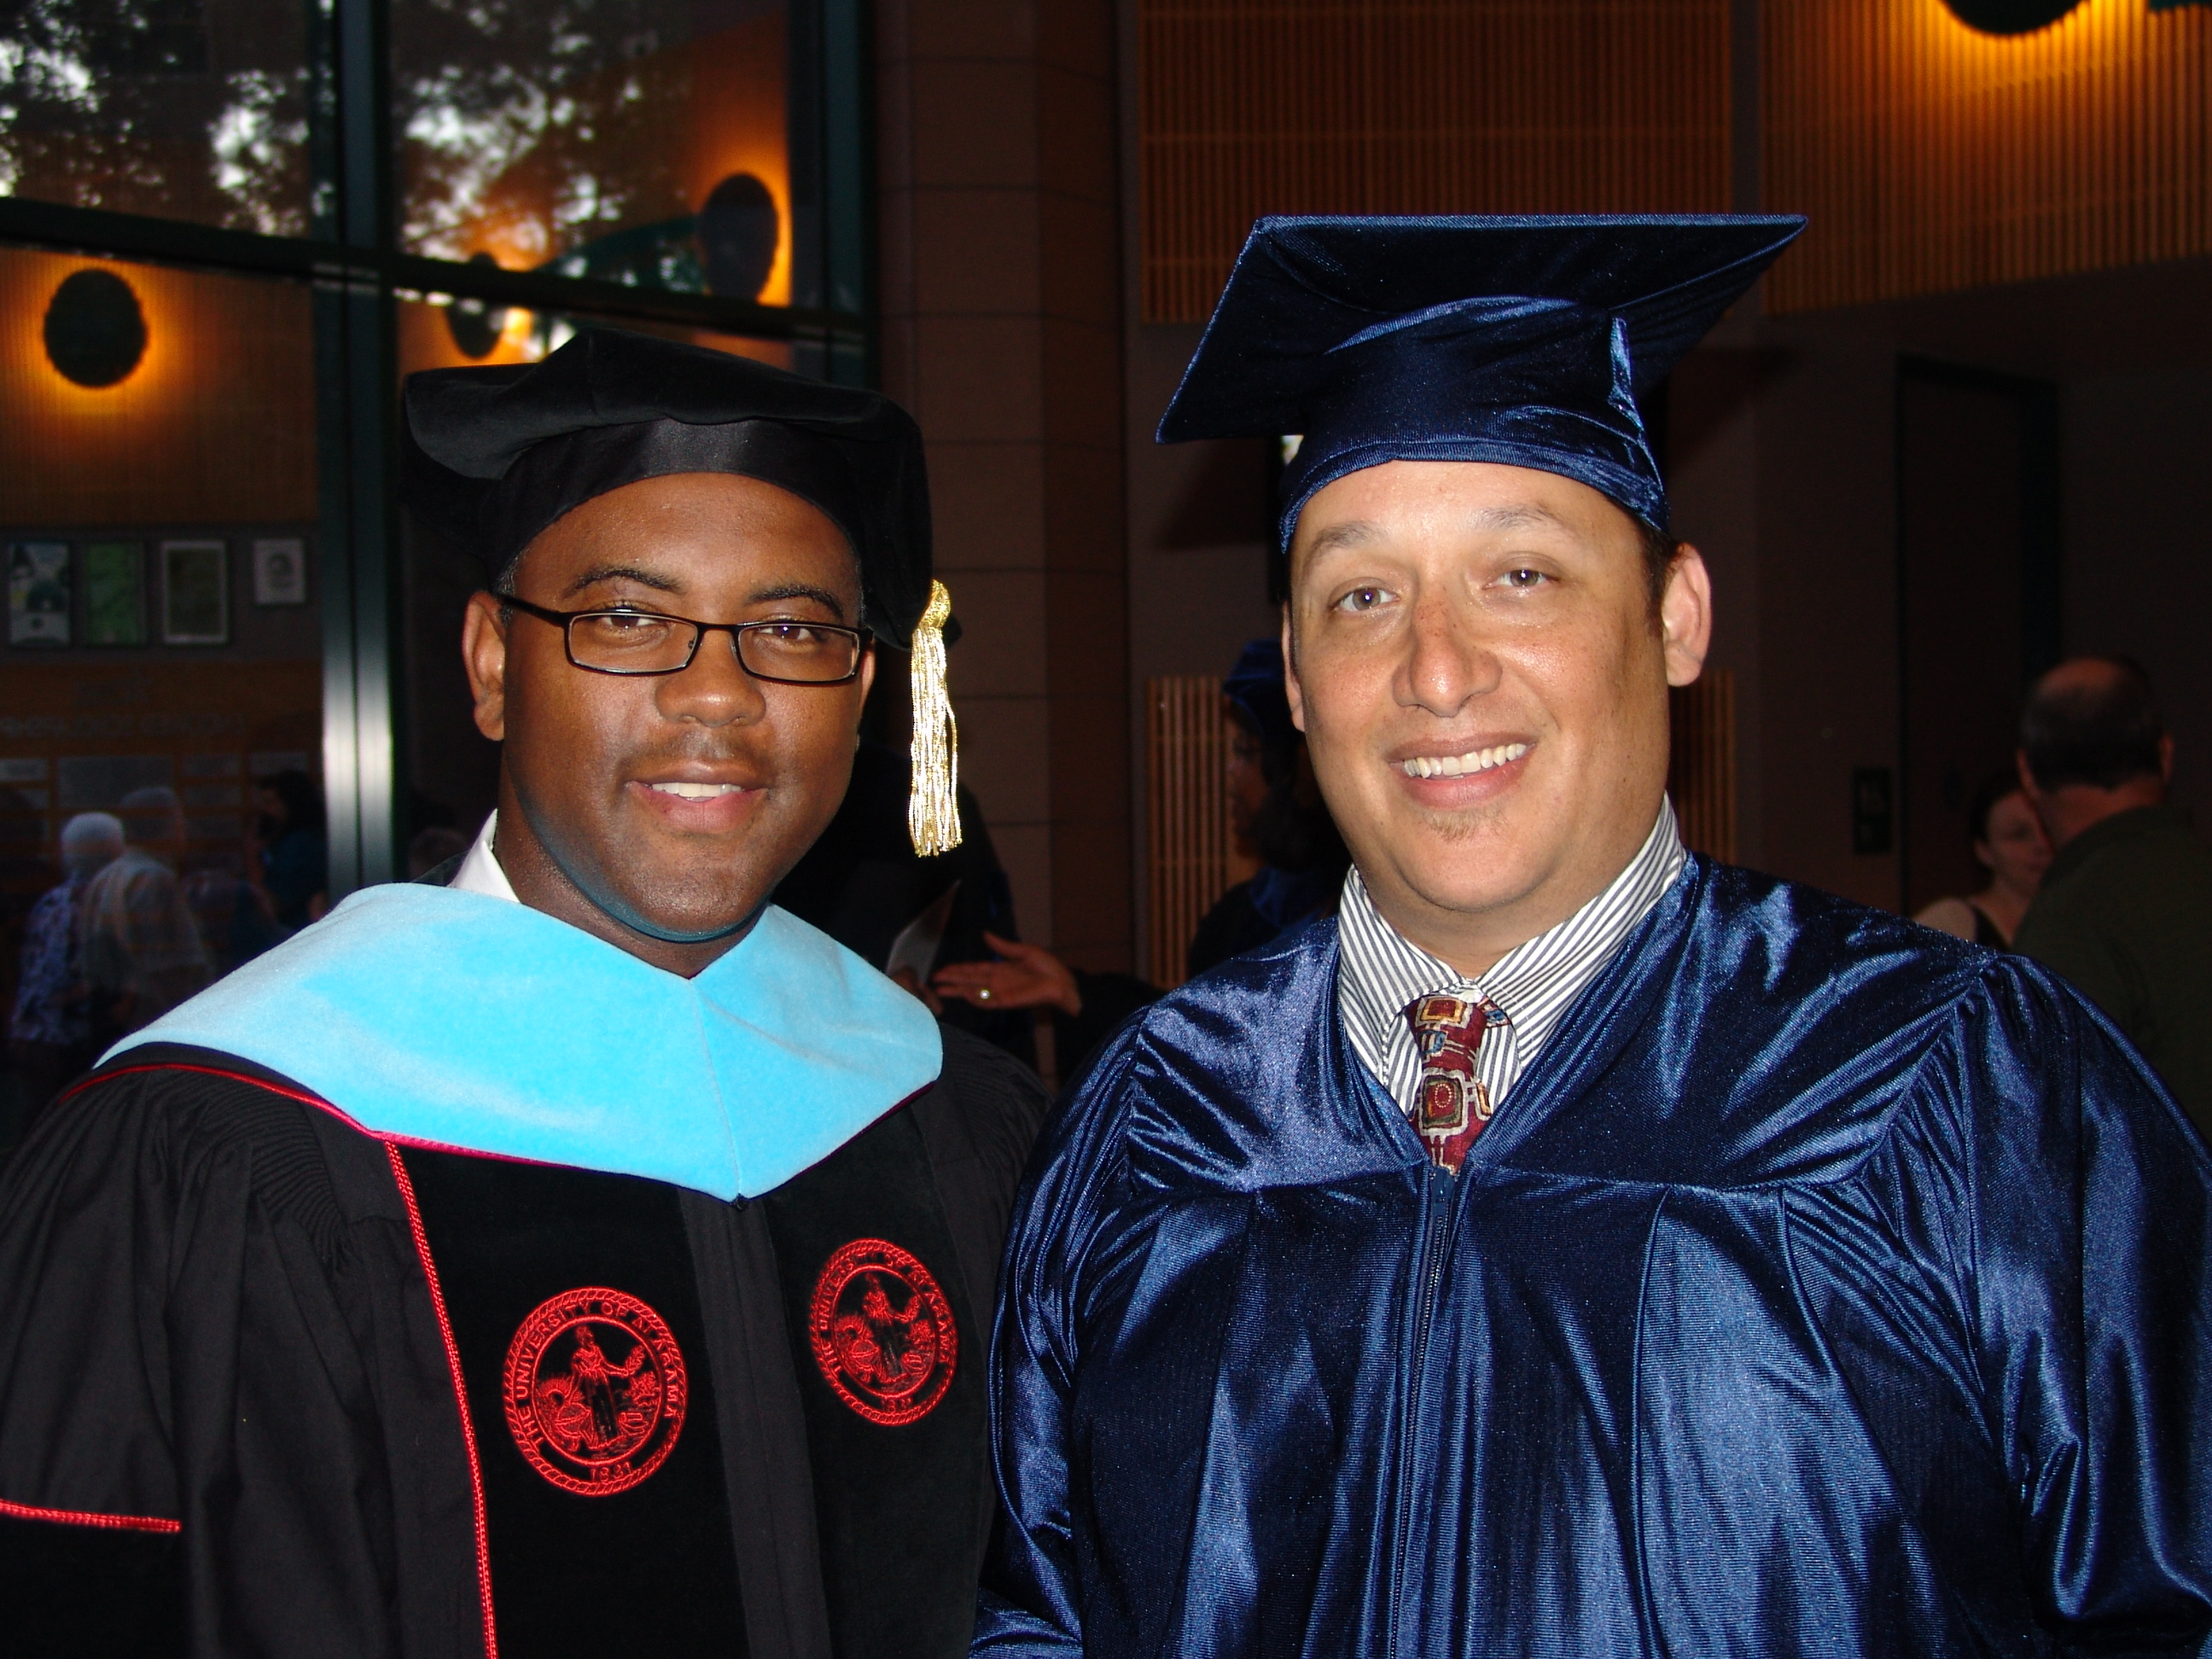 Dr. Austin Lane (left) congratulates Dominic Vessell, who recently completed the General Educational Development (GED) program through Lone Star College-Montgomery. Vessell also served as the student speaker during the GED Commencement ceremony.